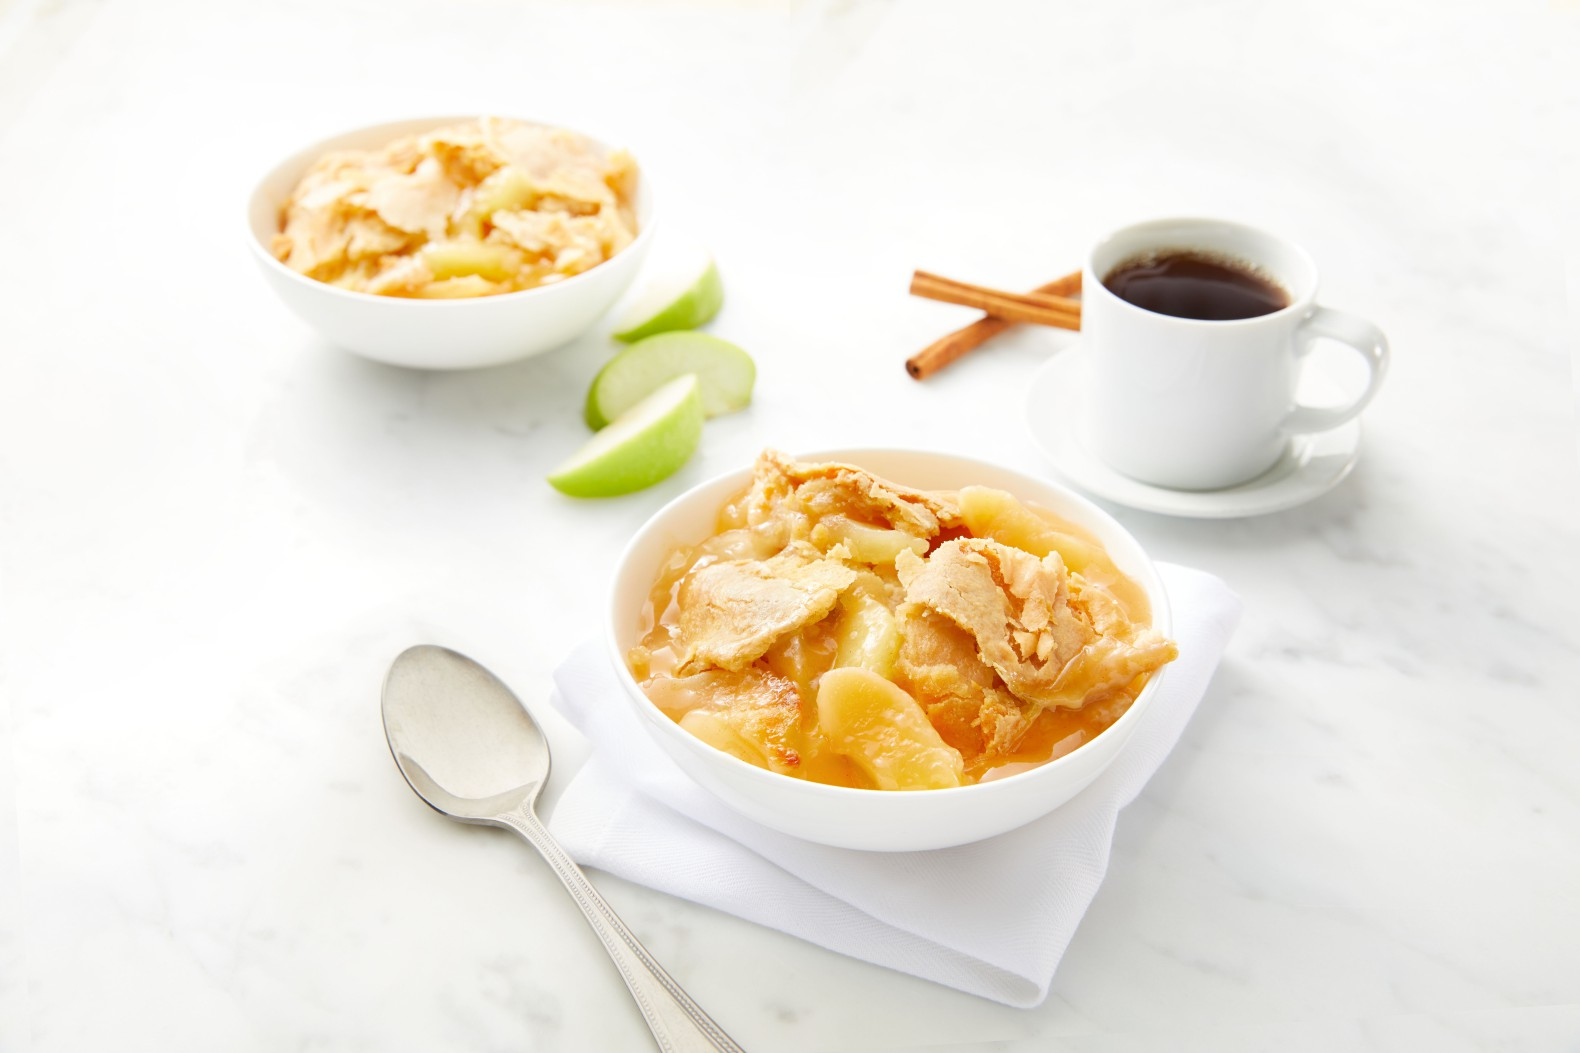 mrs_smith_s_classic_5_lb_ready_to_bake_apple_cobbler-4001269